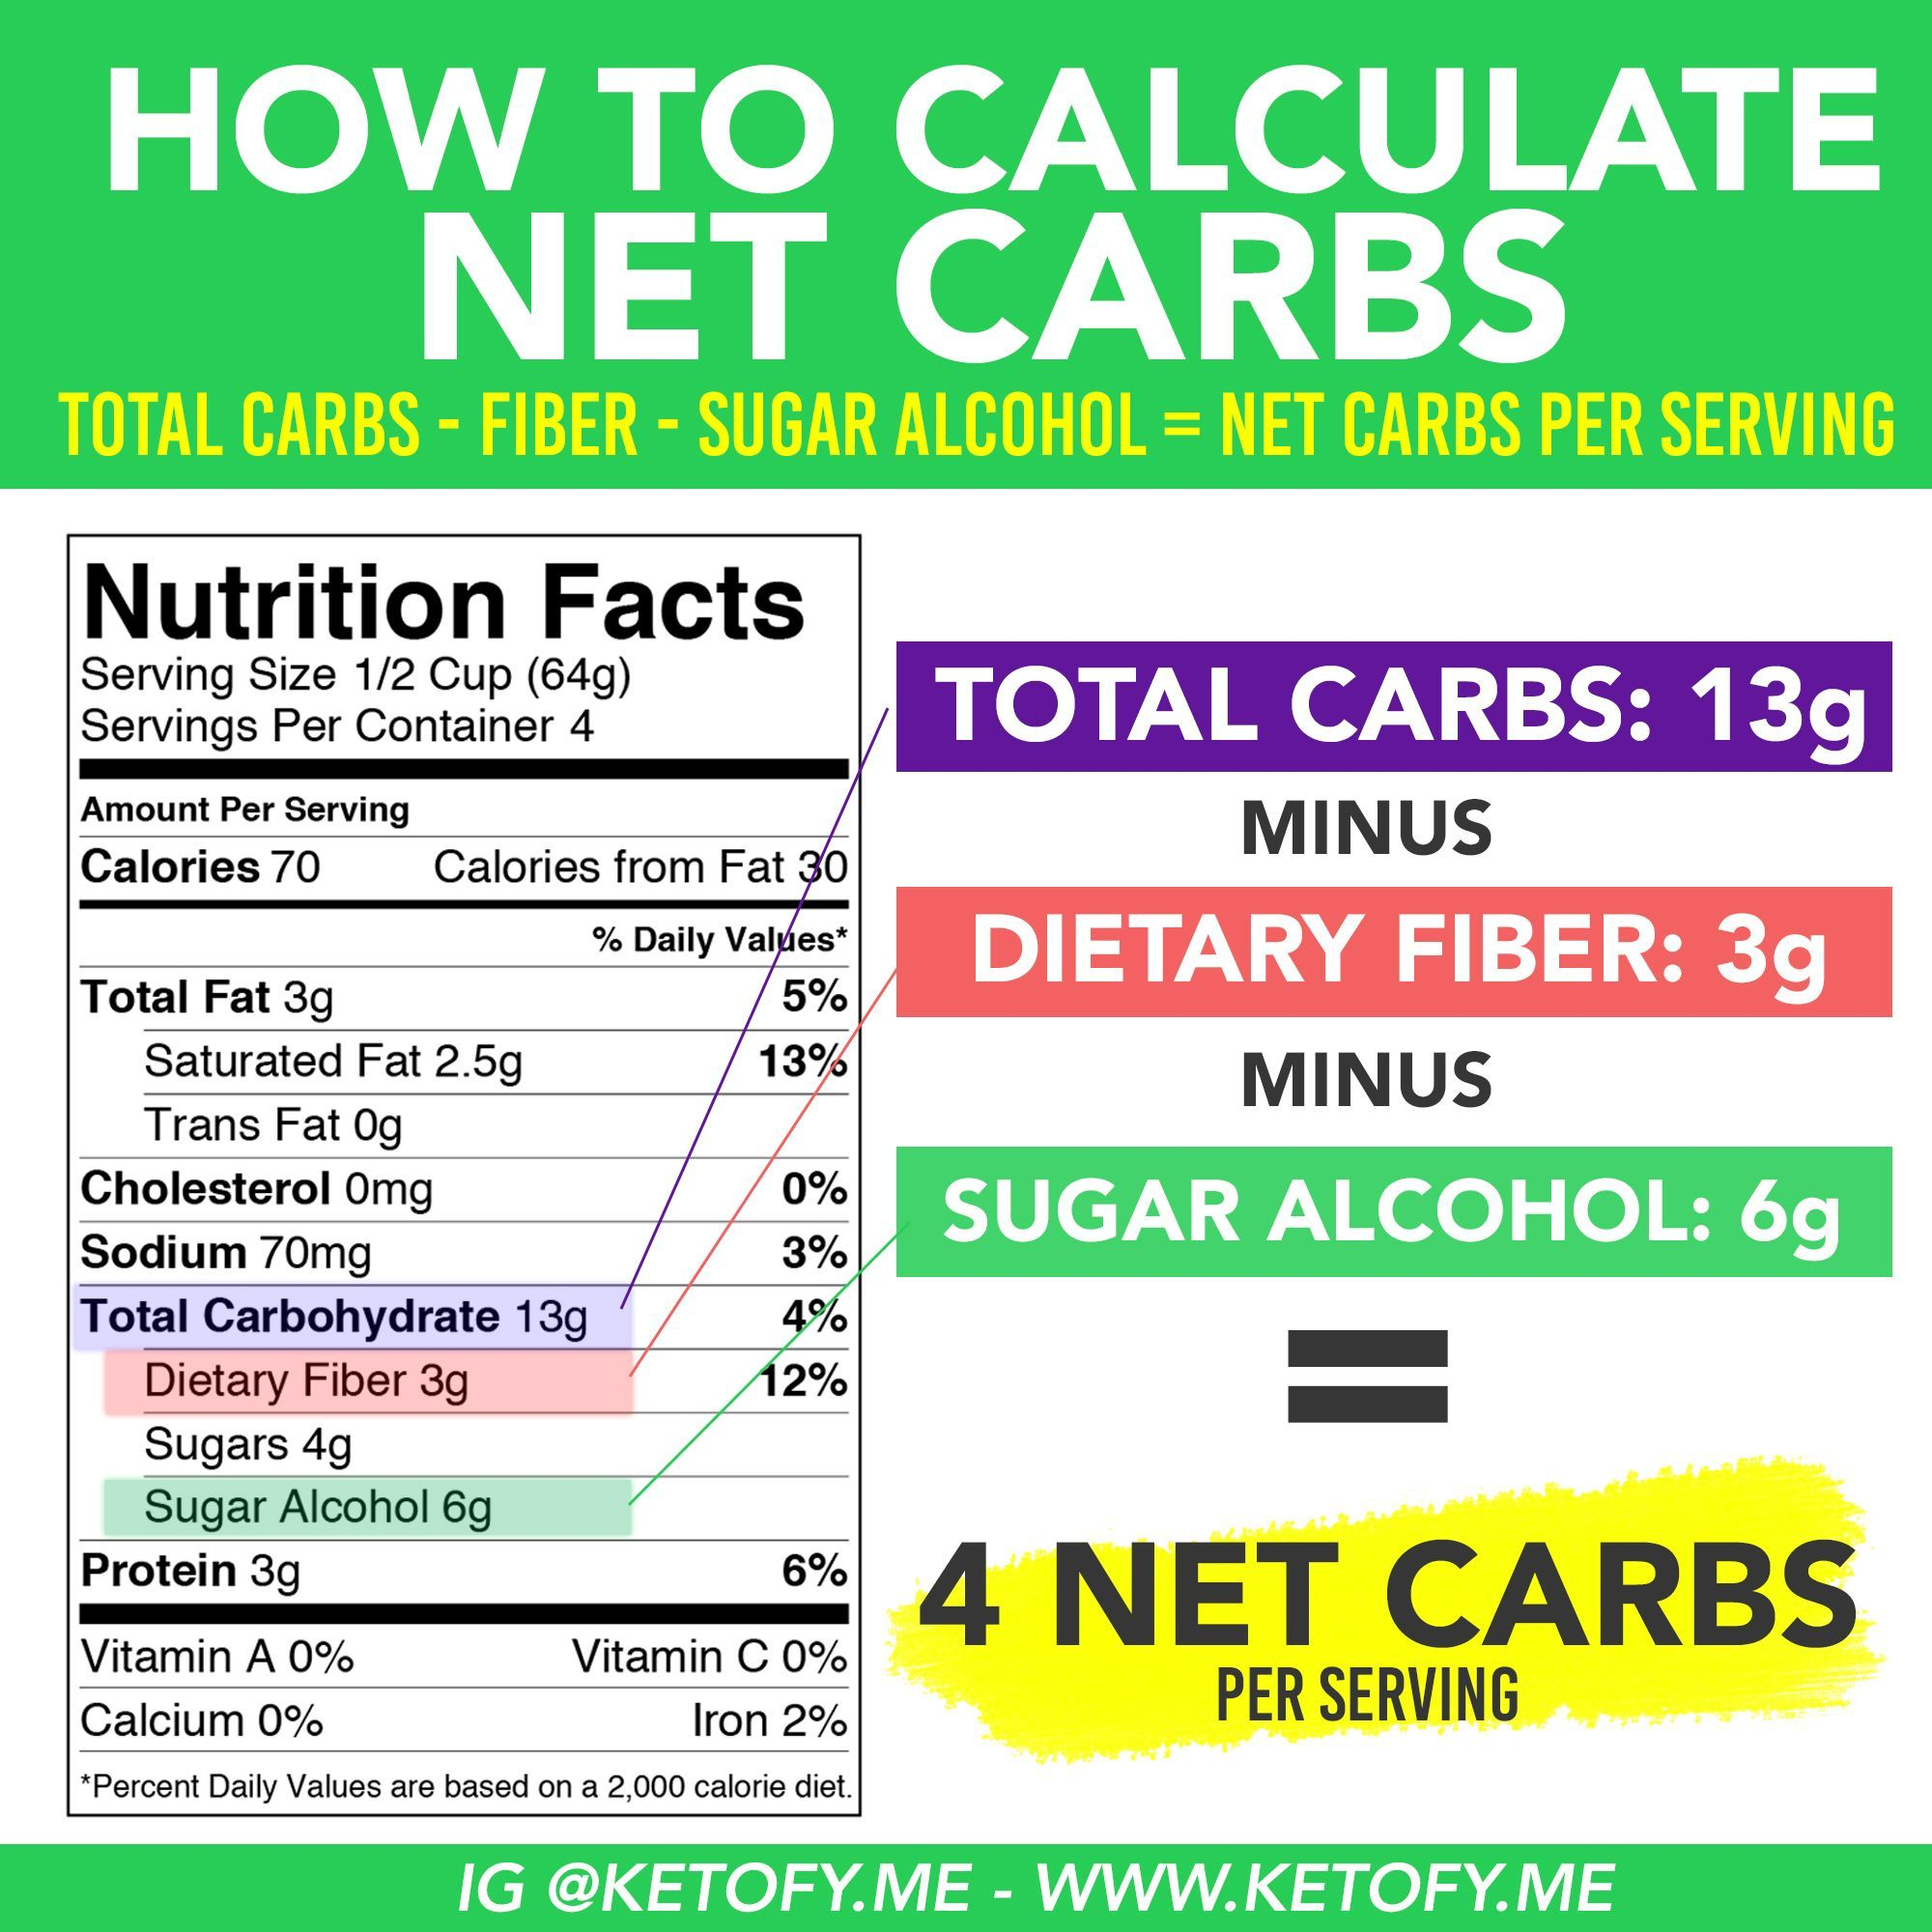 How To Calculate Net Carbs On Keto Www Ketofy Me Ketomotivationquotes Keto Calculator Keto Diet Keto For Beginners